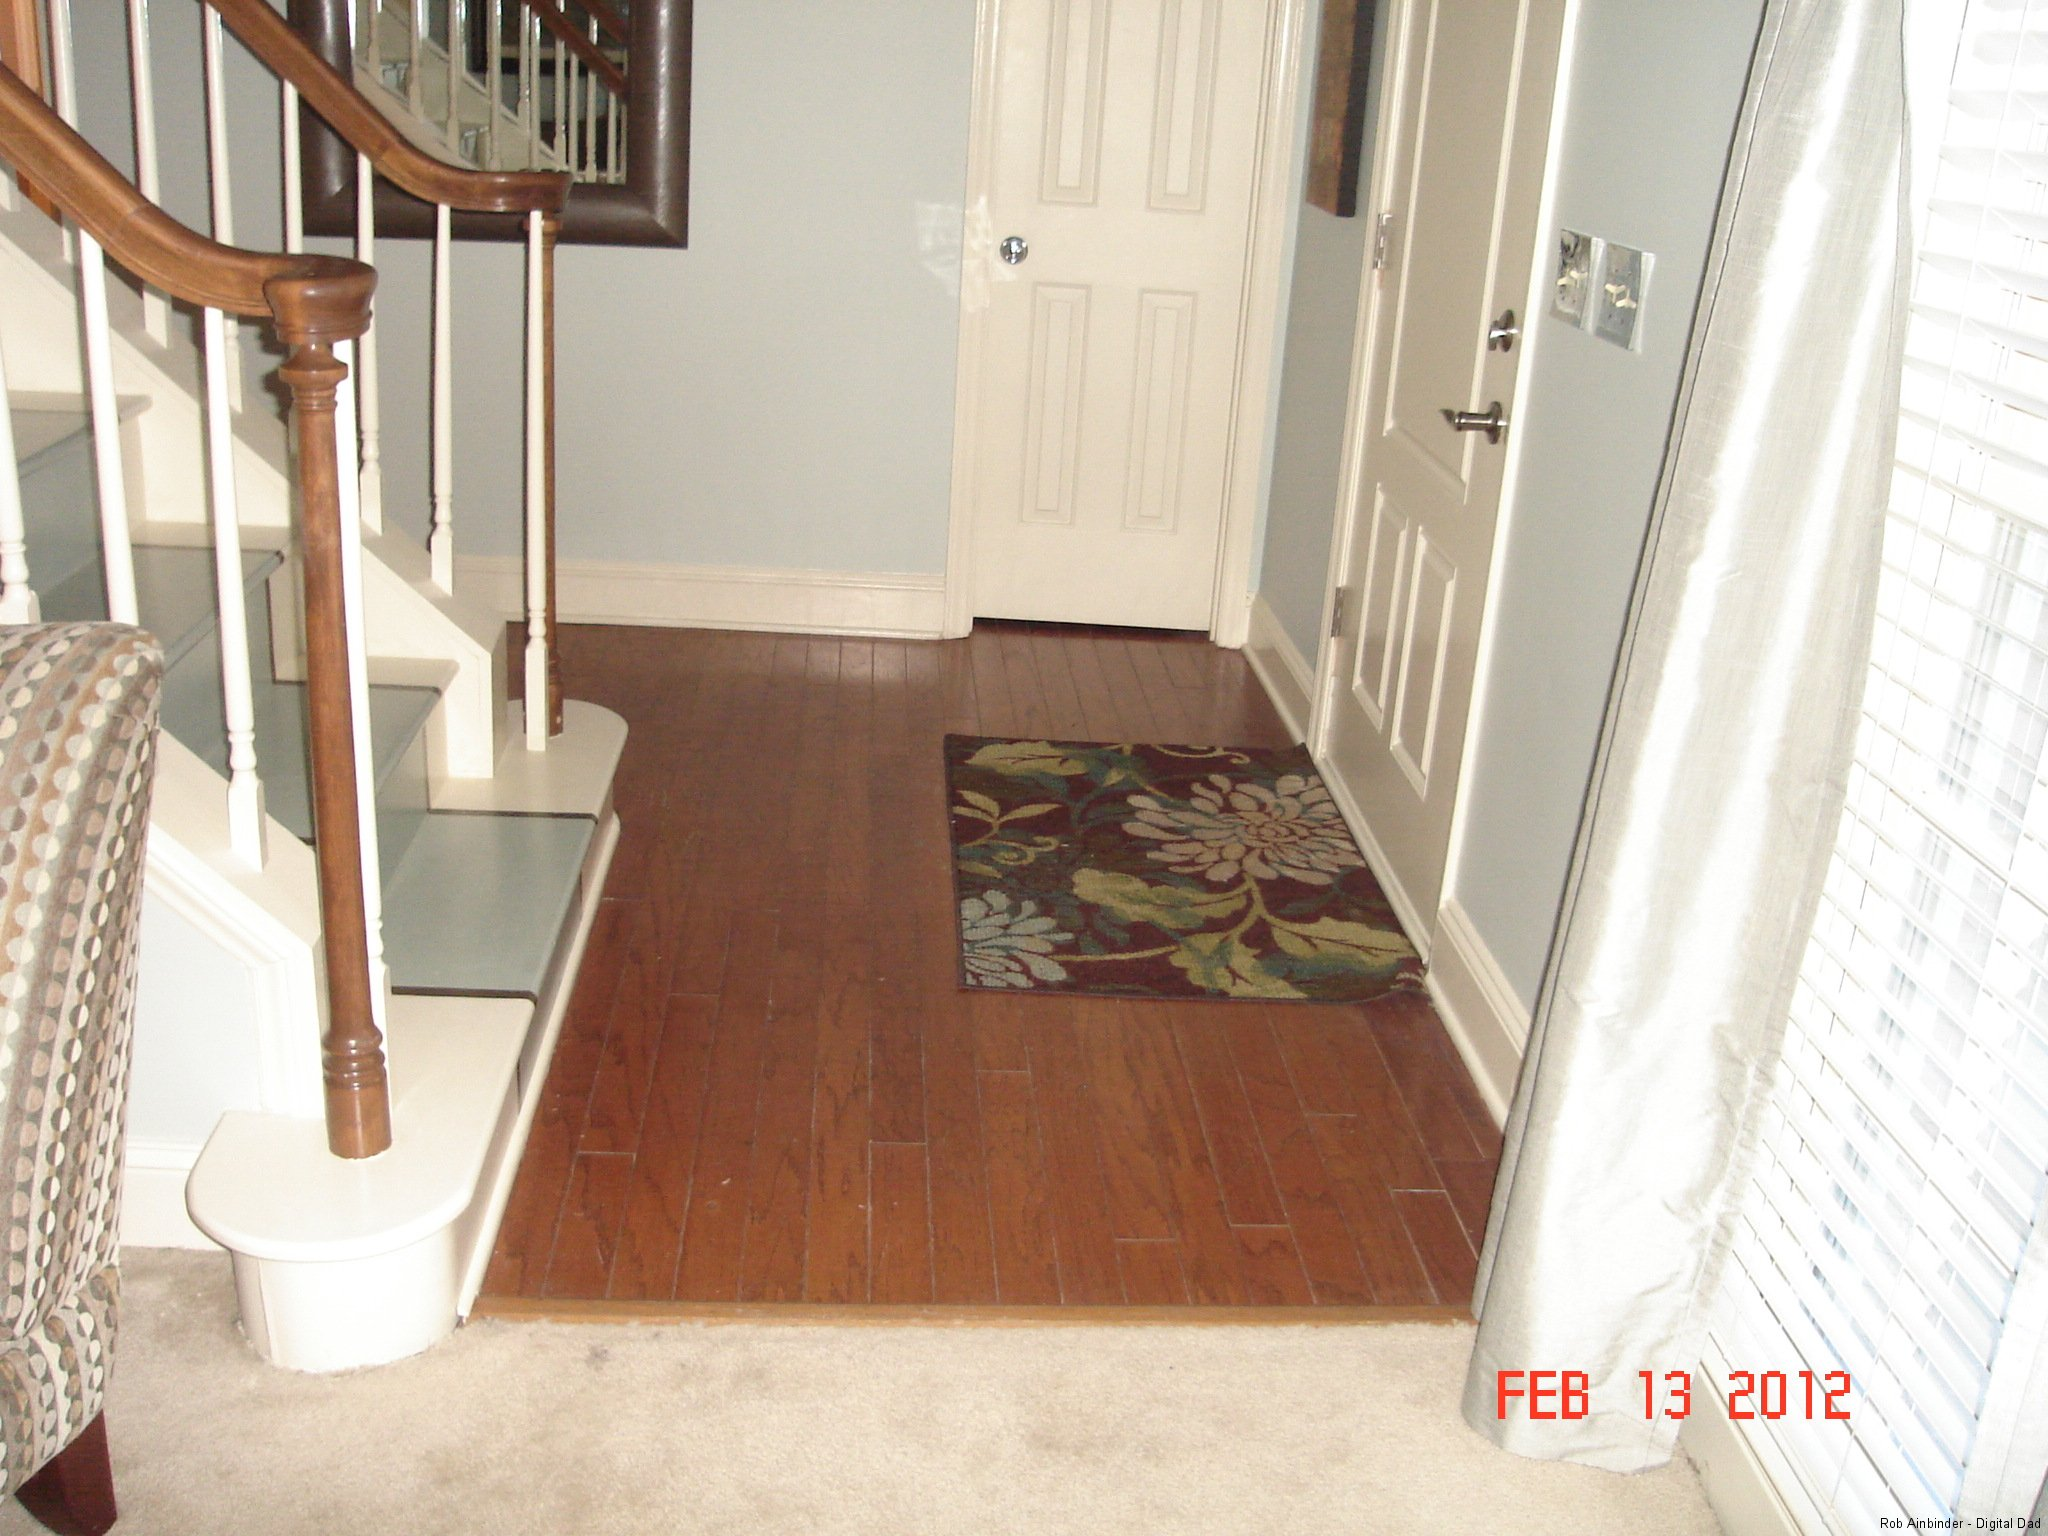 Wood floors at the Entry